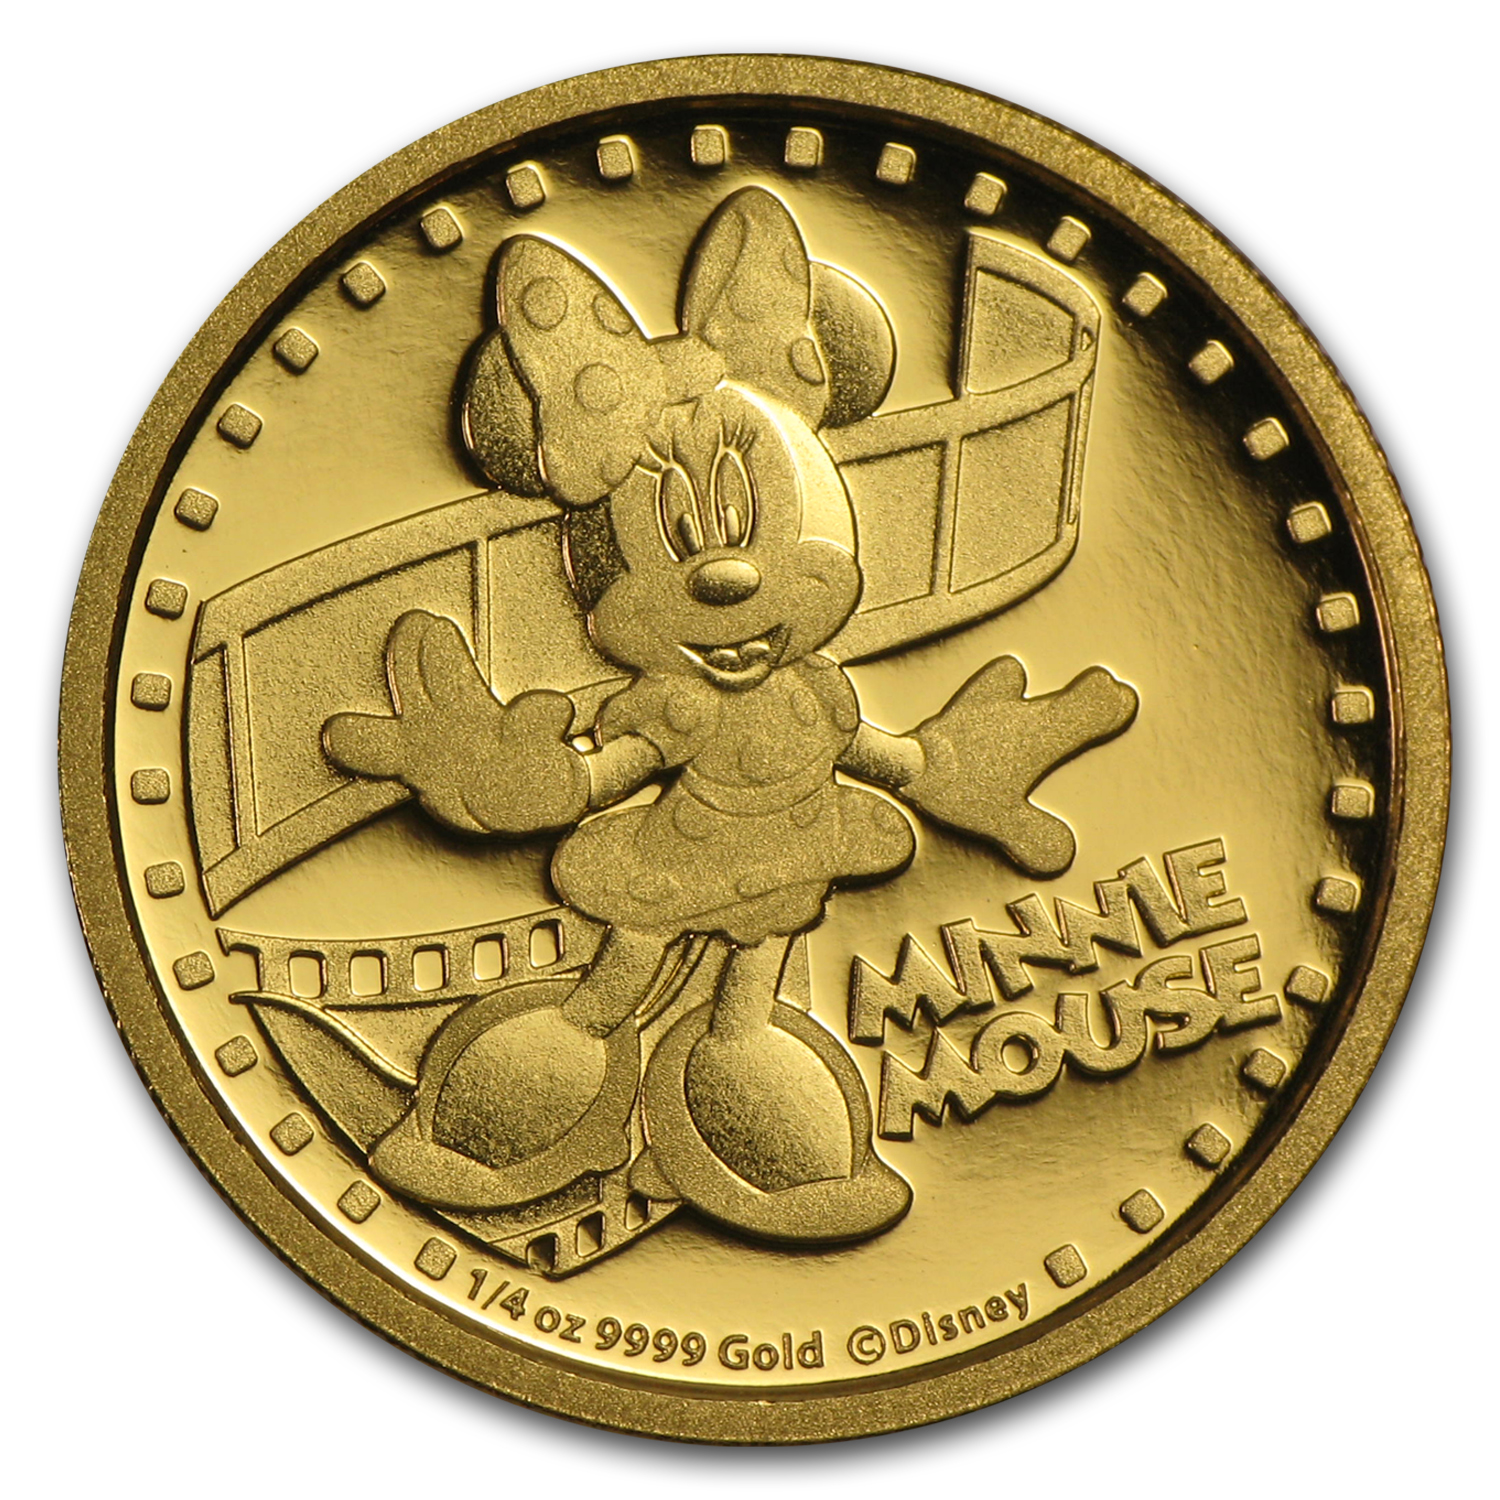 2014 1/4 oz Gold $25 Niue Disney Minnie Mouse